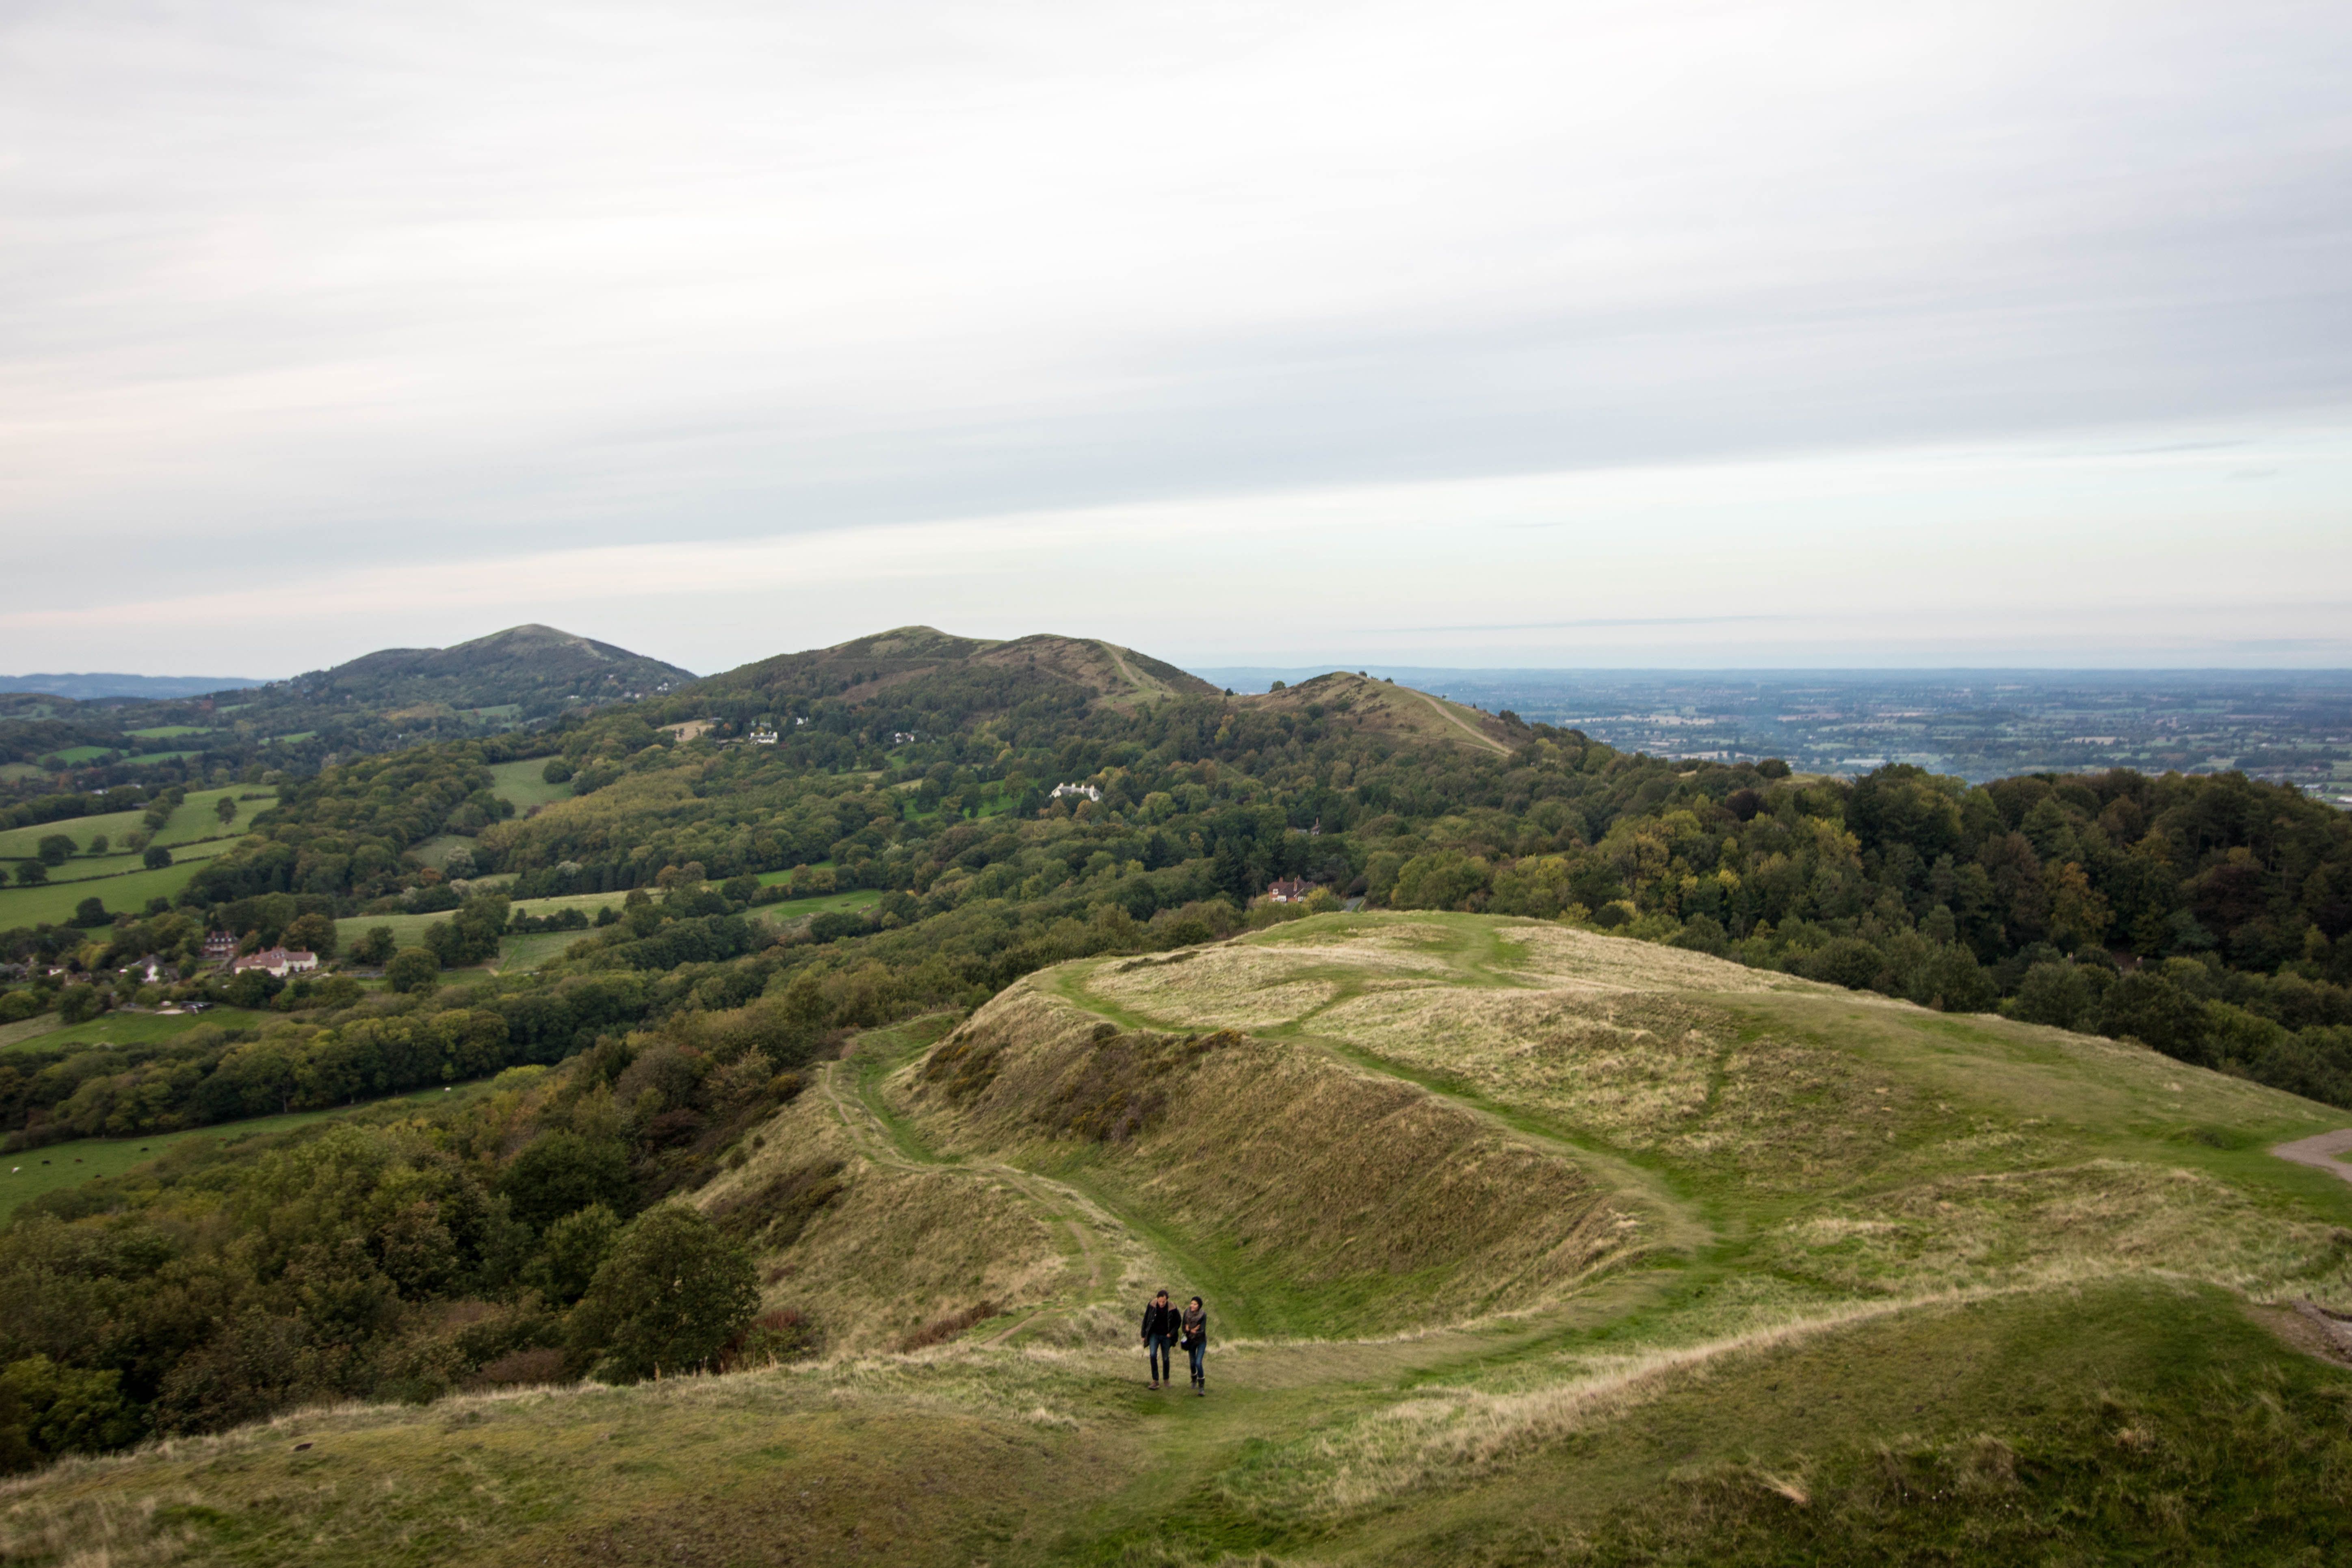 Malvern Hills Green Hill Mountain Views The Malverns Couple Walking Top 25 Things to Do in Herefordshire